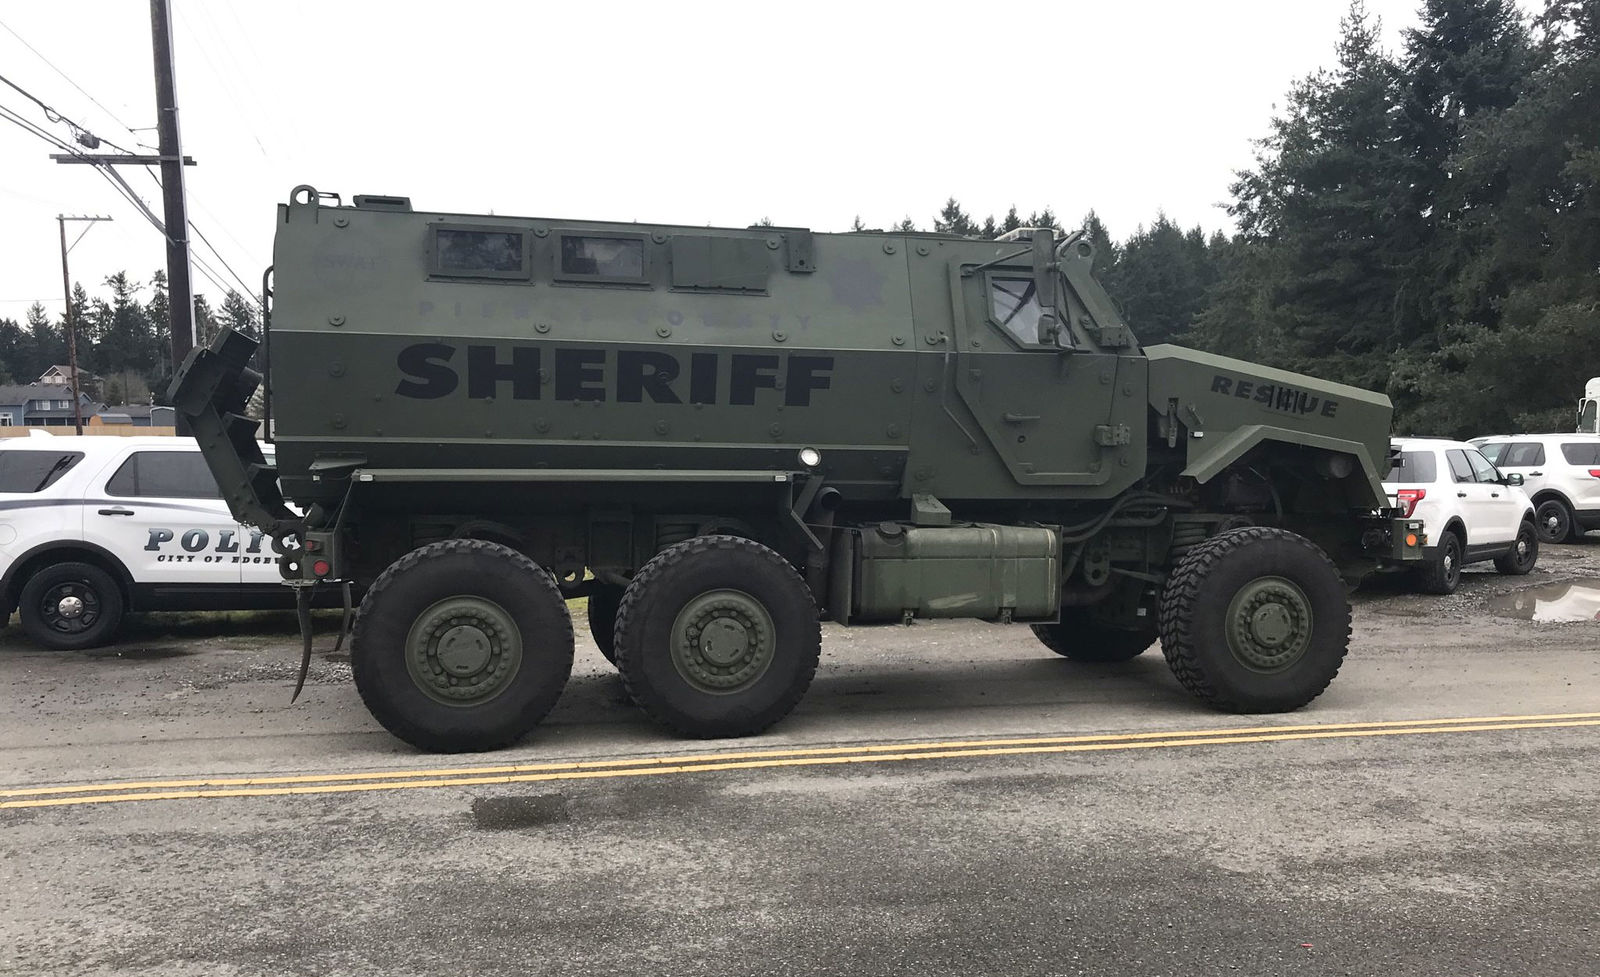 A SWAT team responds during the standoff outside a Graham-area home. (Photo: Pierce Co. Sheriff's Office)